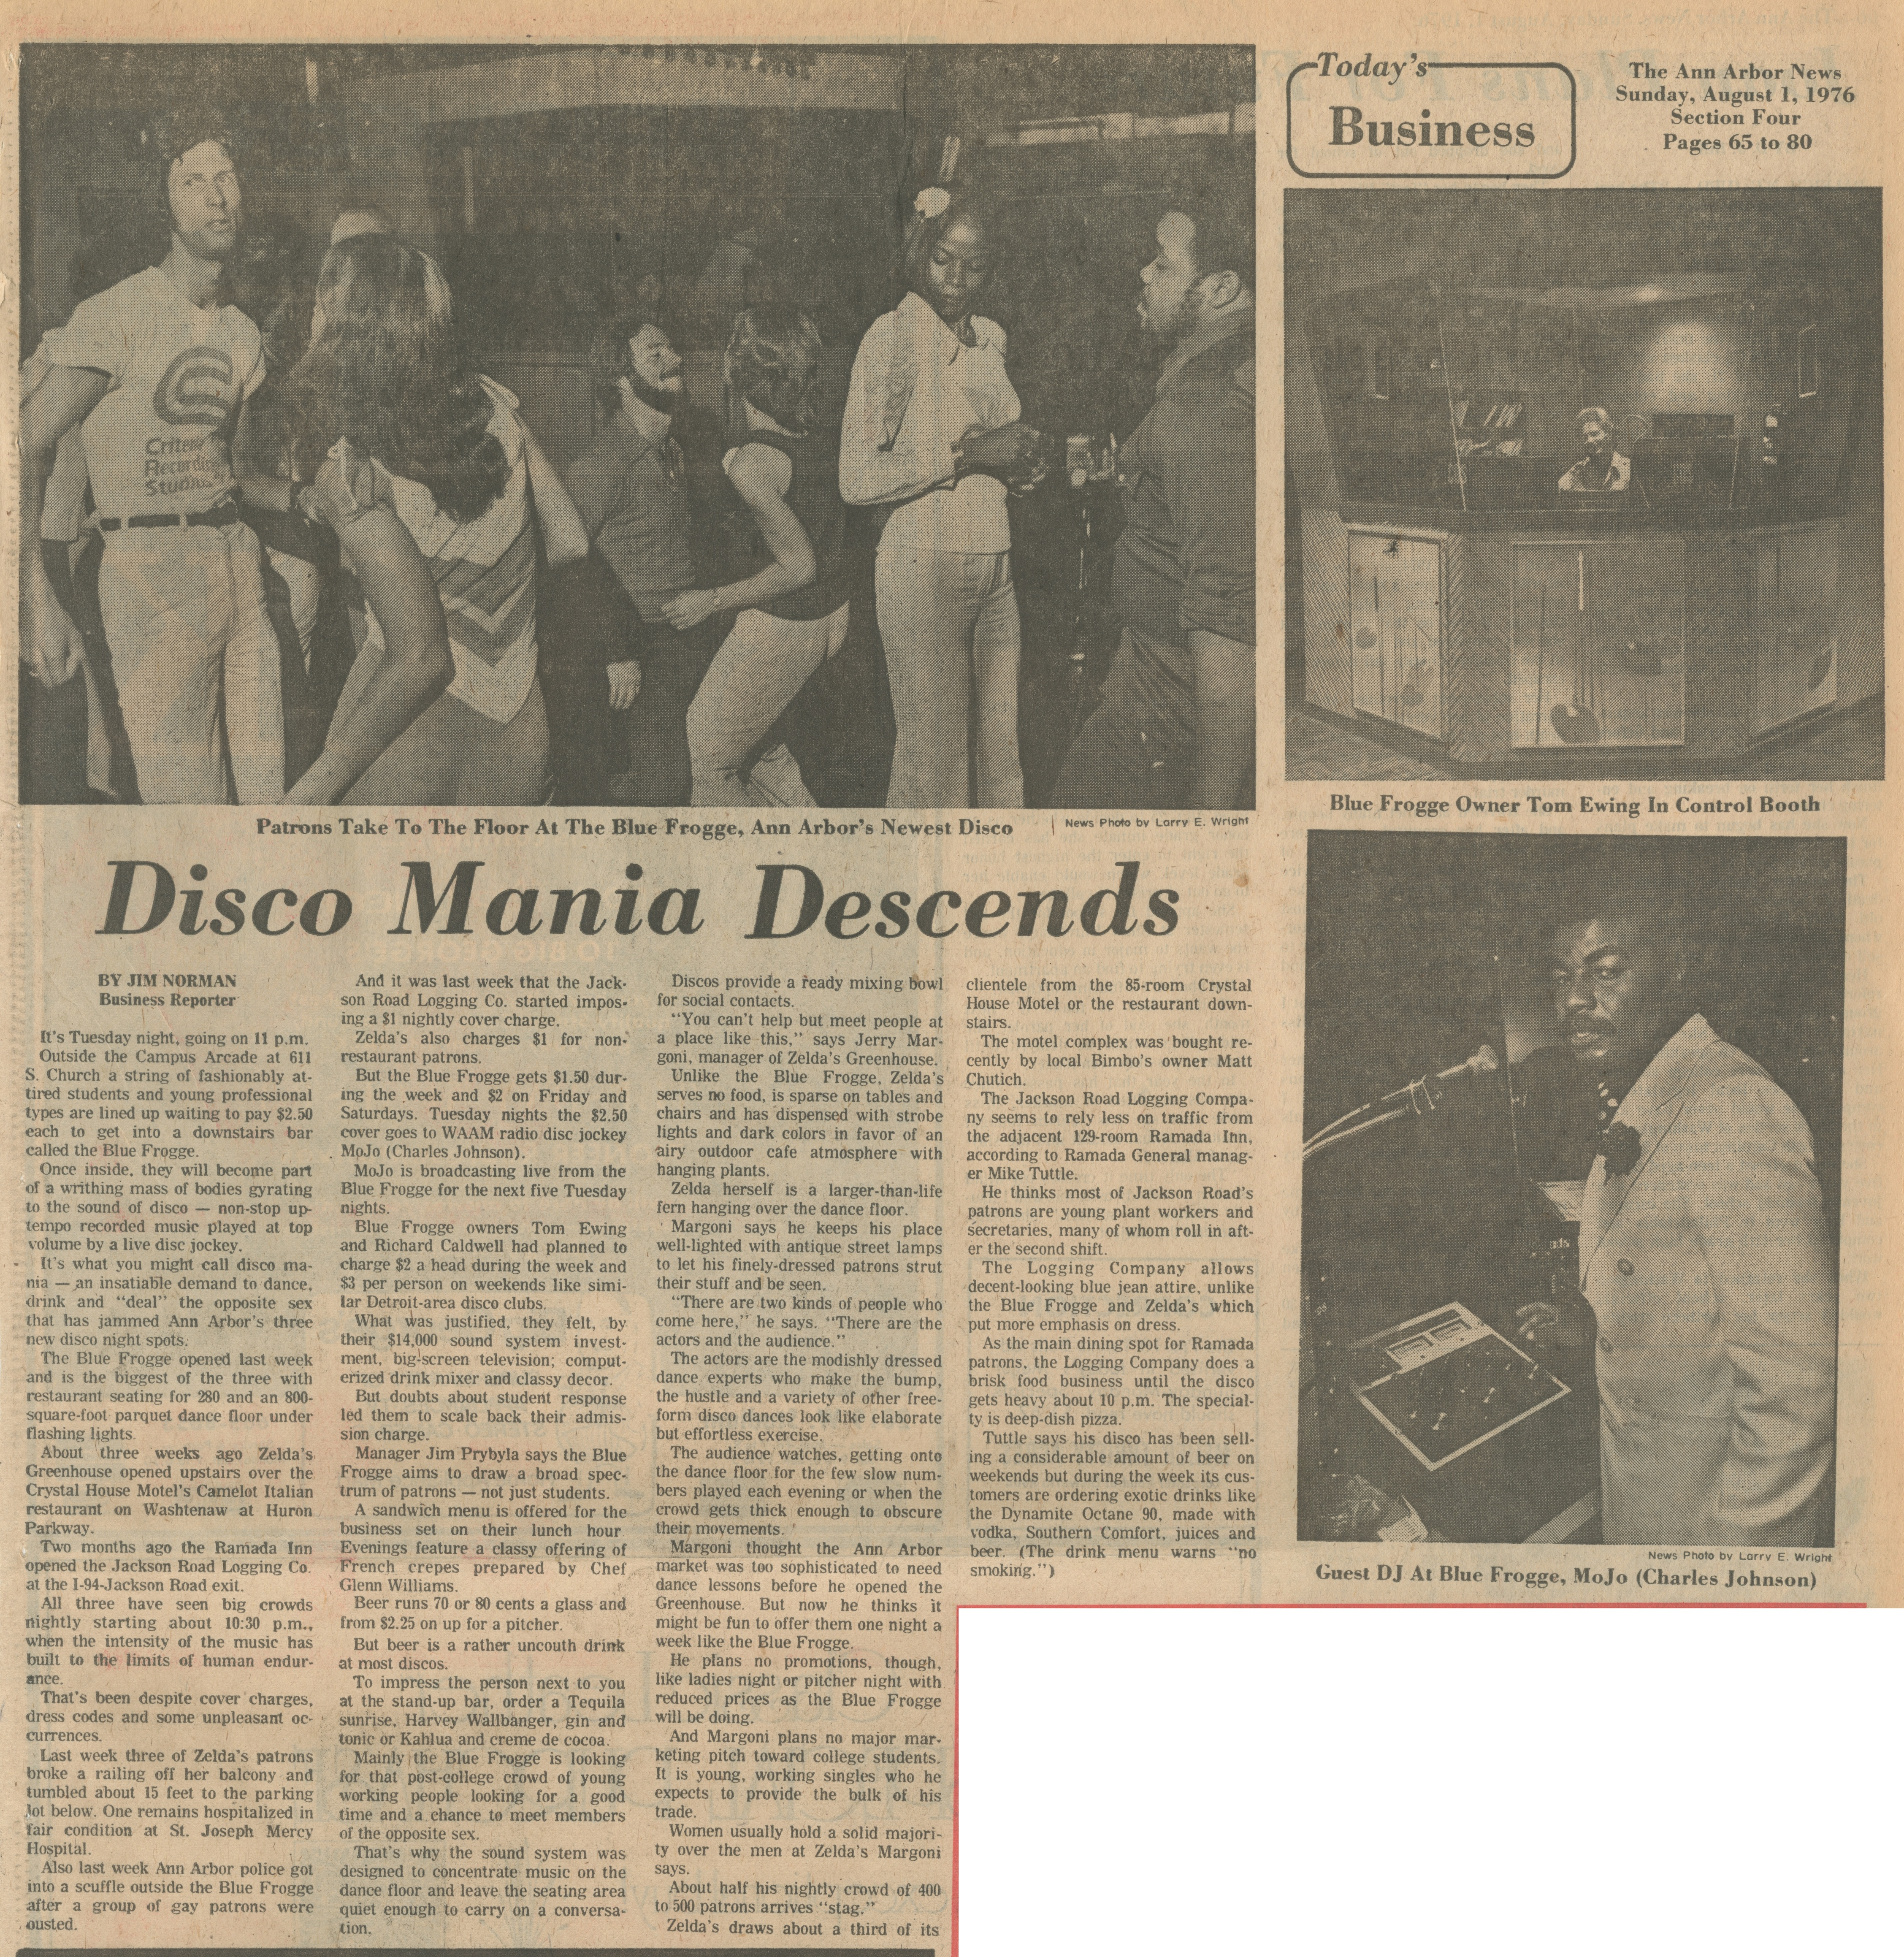 Disco Mania Descends image